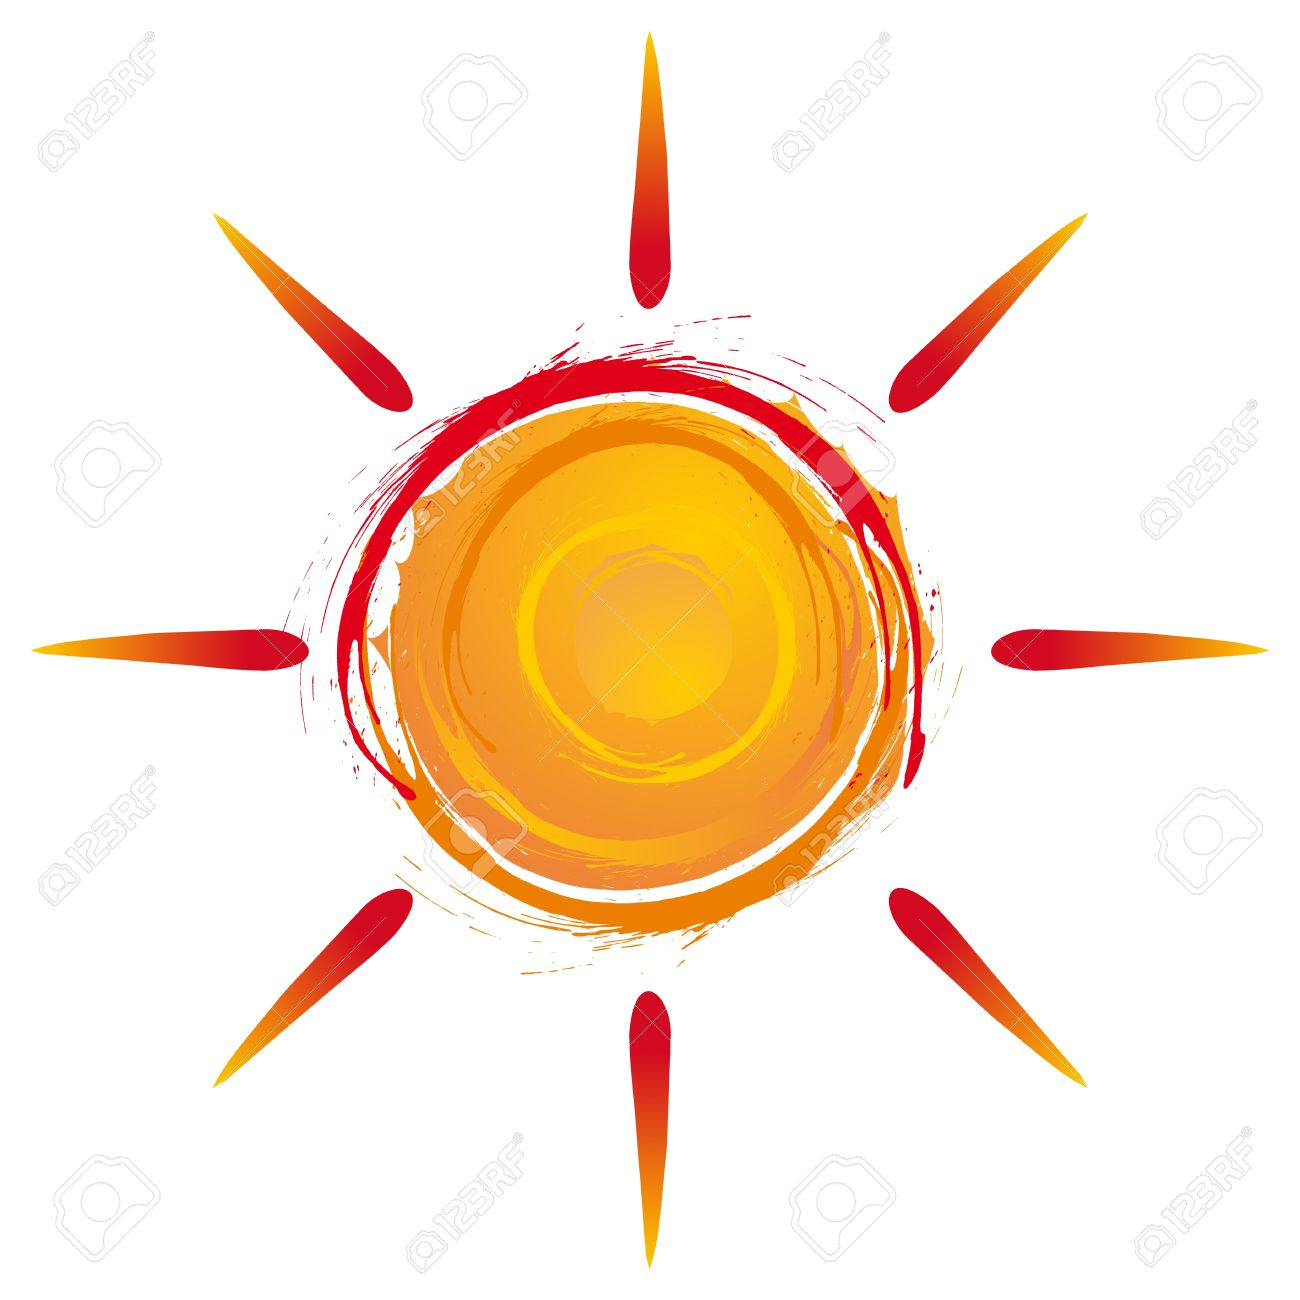 Summer Sun Exploding In Warm Colors Royalty Free Cliparts, Vectors.